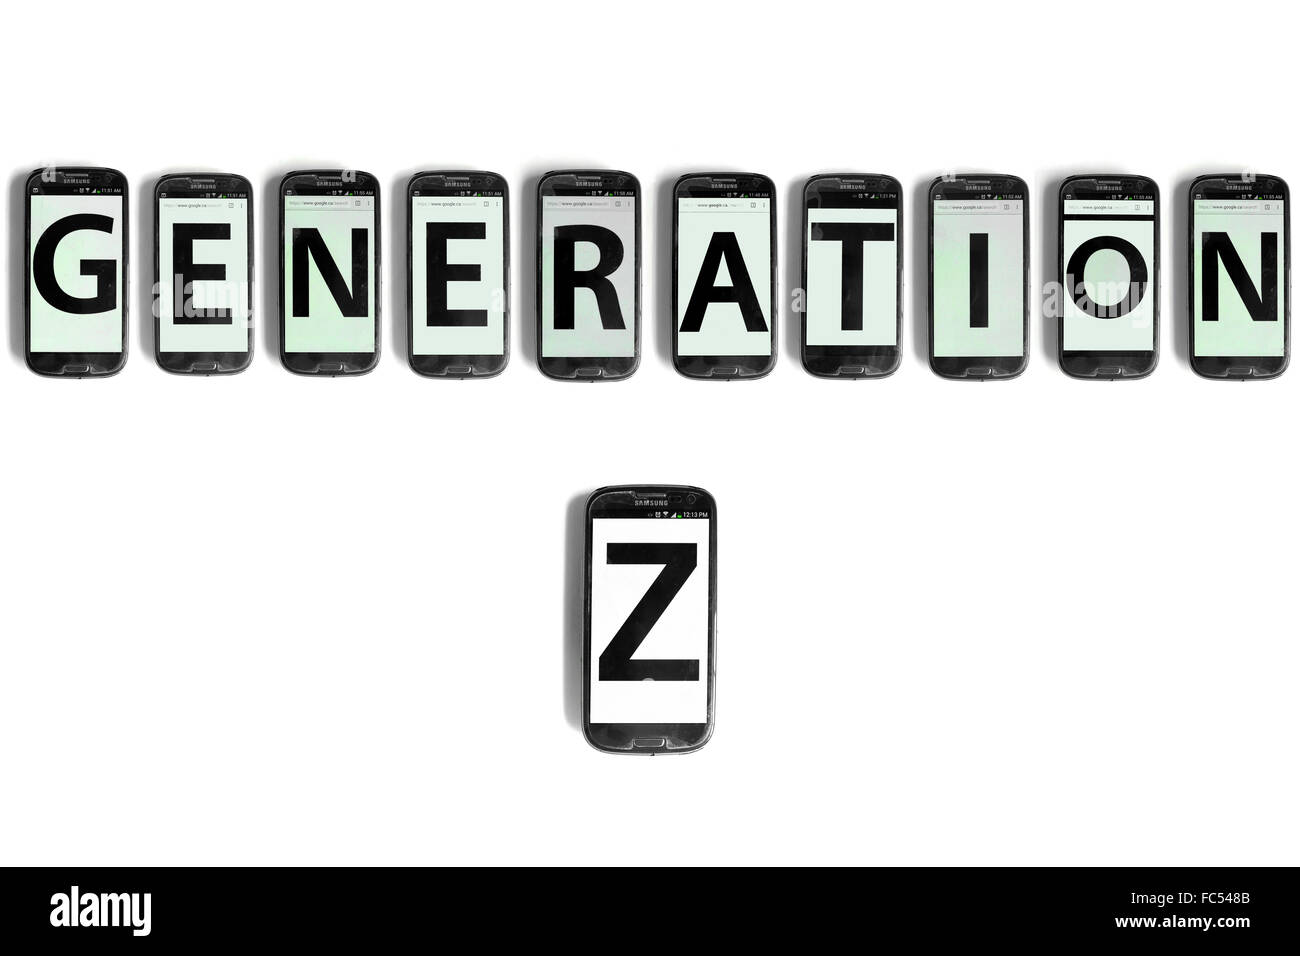 Generation Z written on the screens of smartphones photographed against a white background. - Stock Image